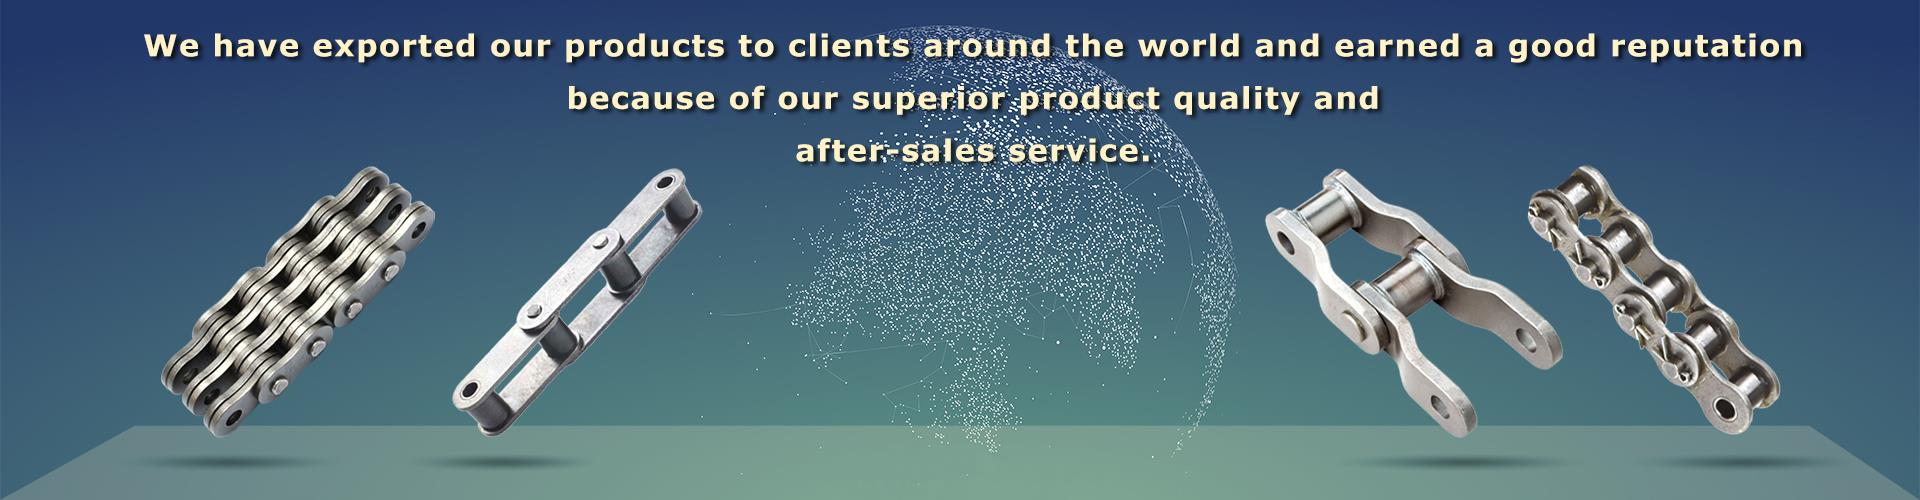 Customized  made in China - replacement parts -  in El Djelfa Algeria  Hot Sale Zinc Plated Stainless Steel Gears with ce certificate top quality low price